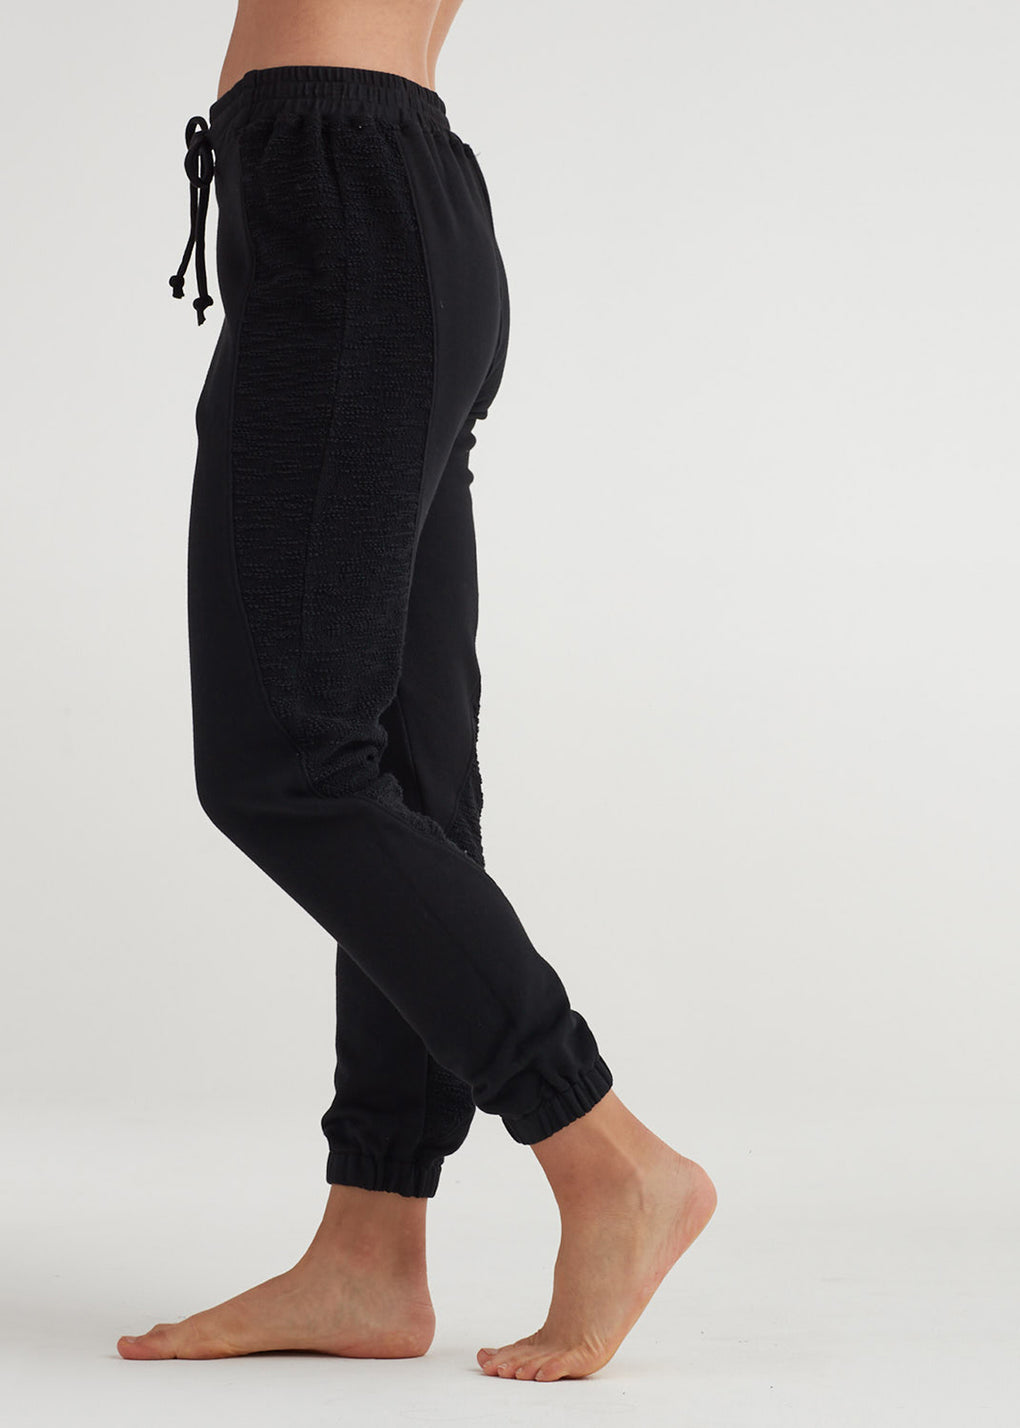 SEAMS FORWARD JOGGER